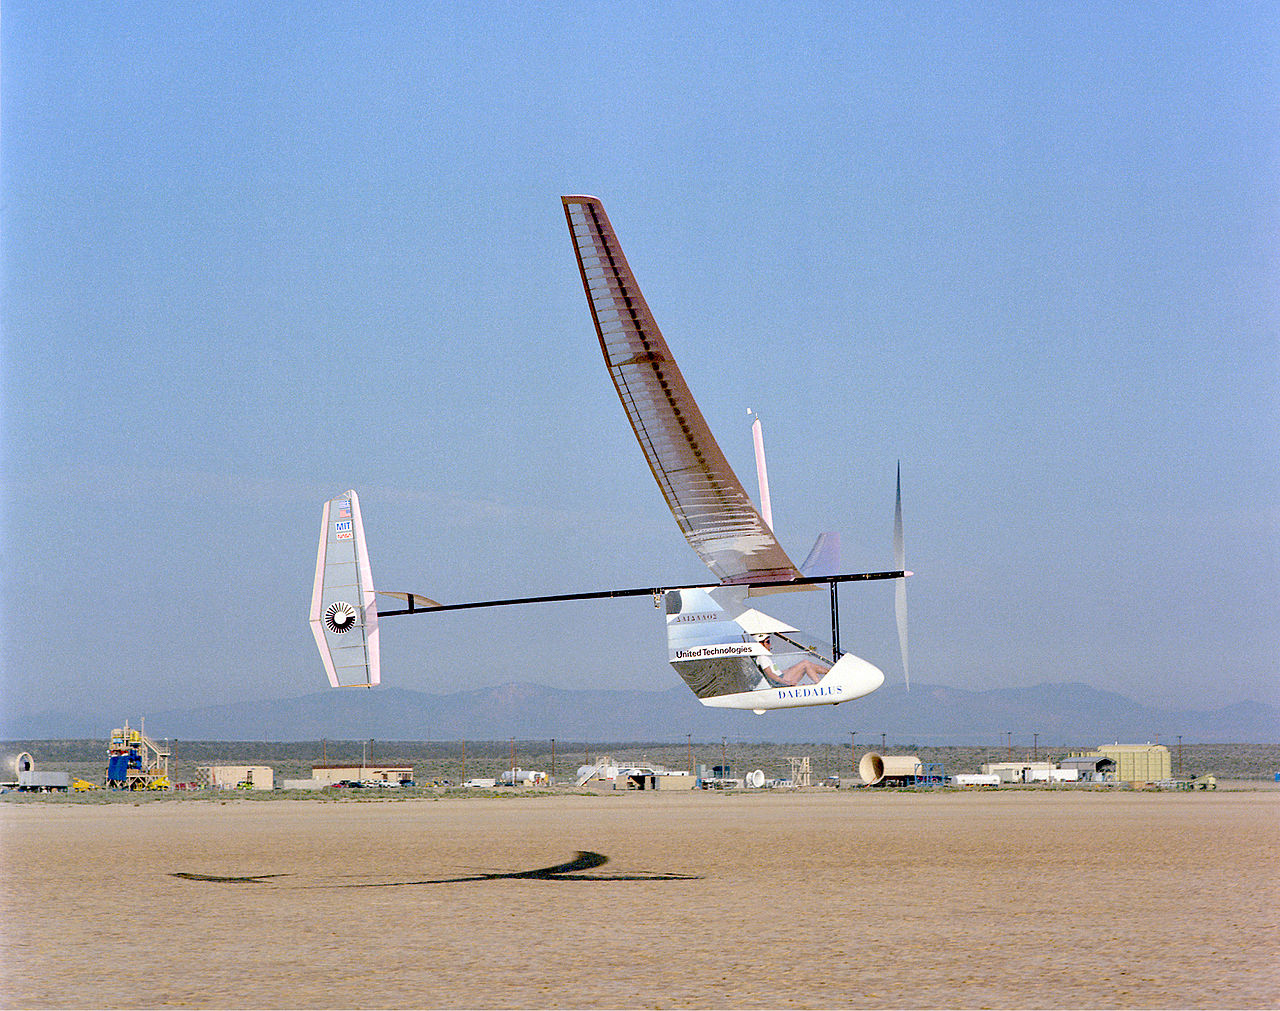 https://upload.wikimedia.org/wikipedia/commons/thumb/8/80/Daedalus-human-powered-aircraft.jpg/1280px-Daedalus-human-powered-aircraft.jpg